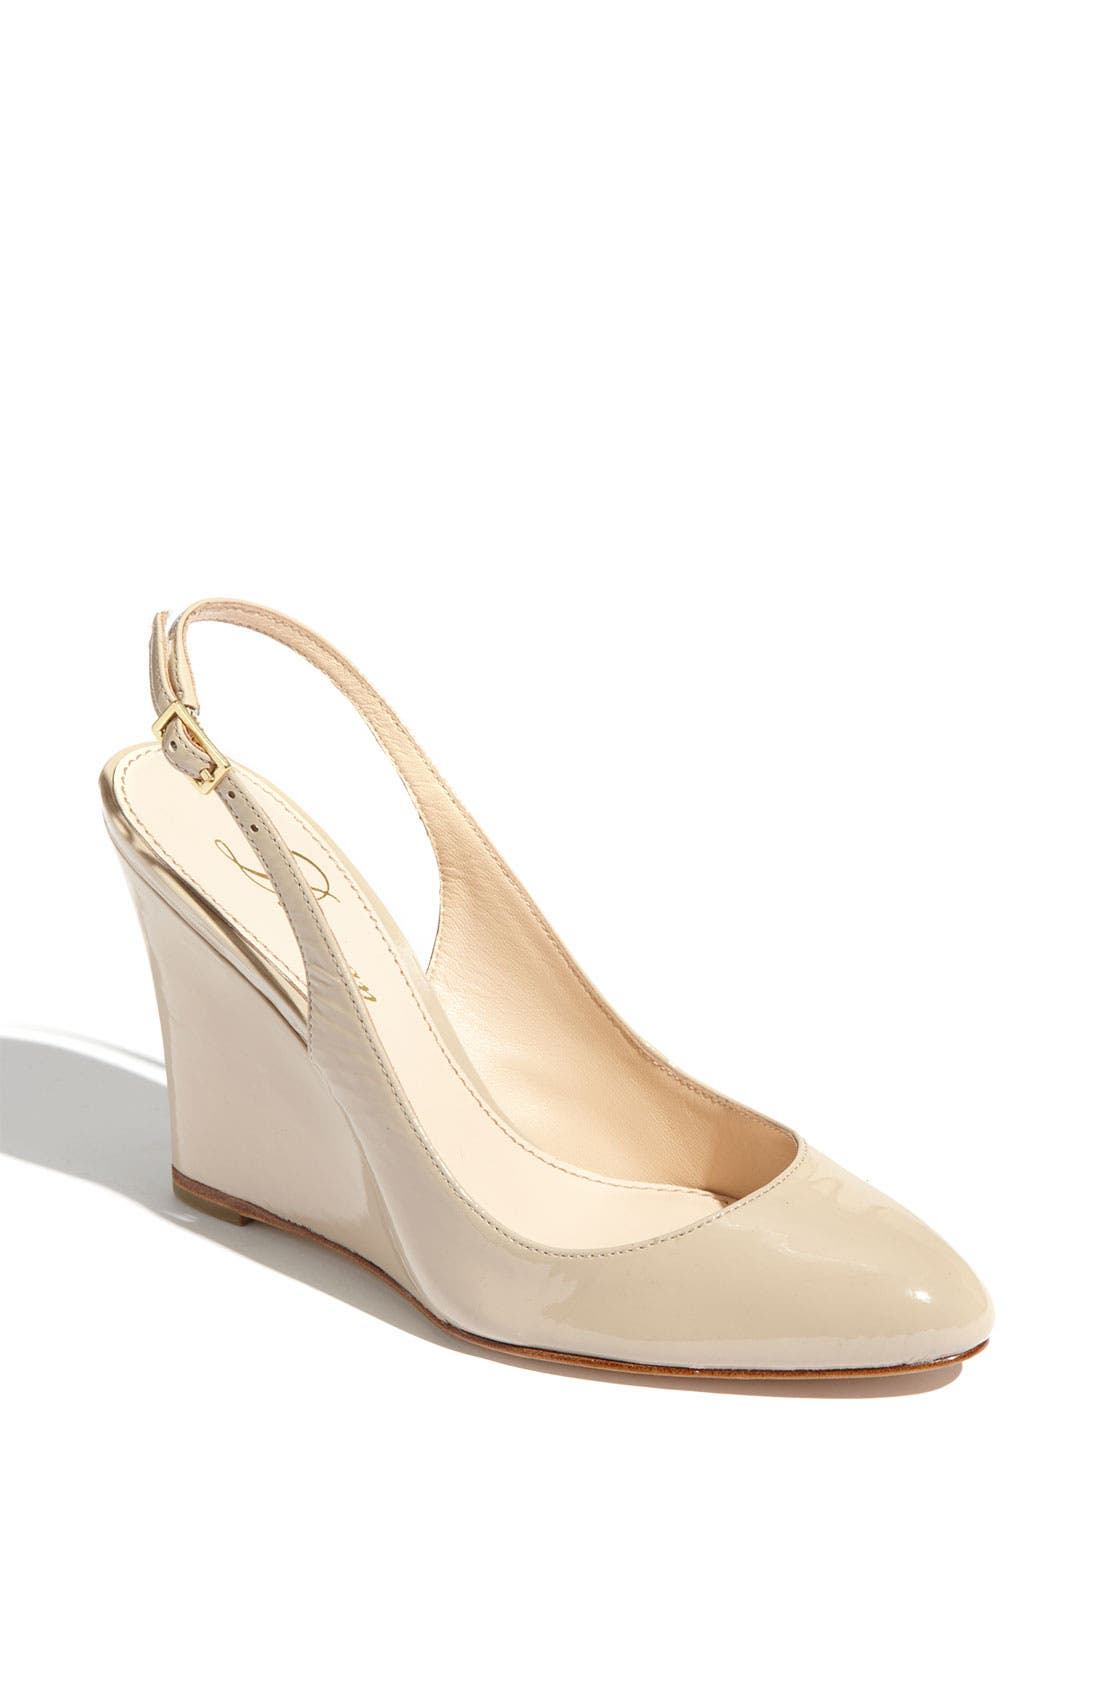 Alternate Image 1 Selected - Delman 'Fargo' Pump (Online Only)